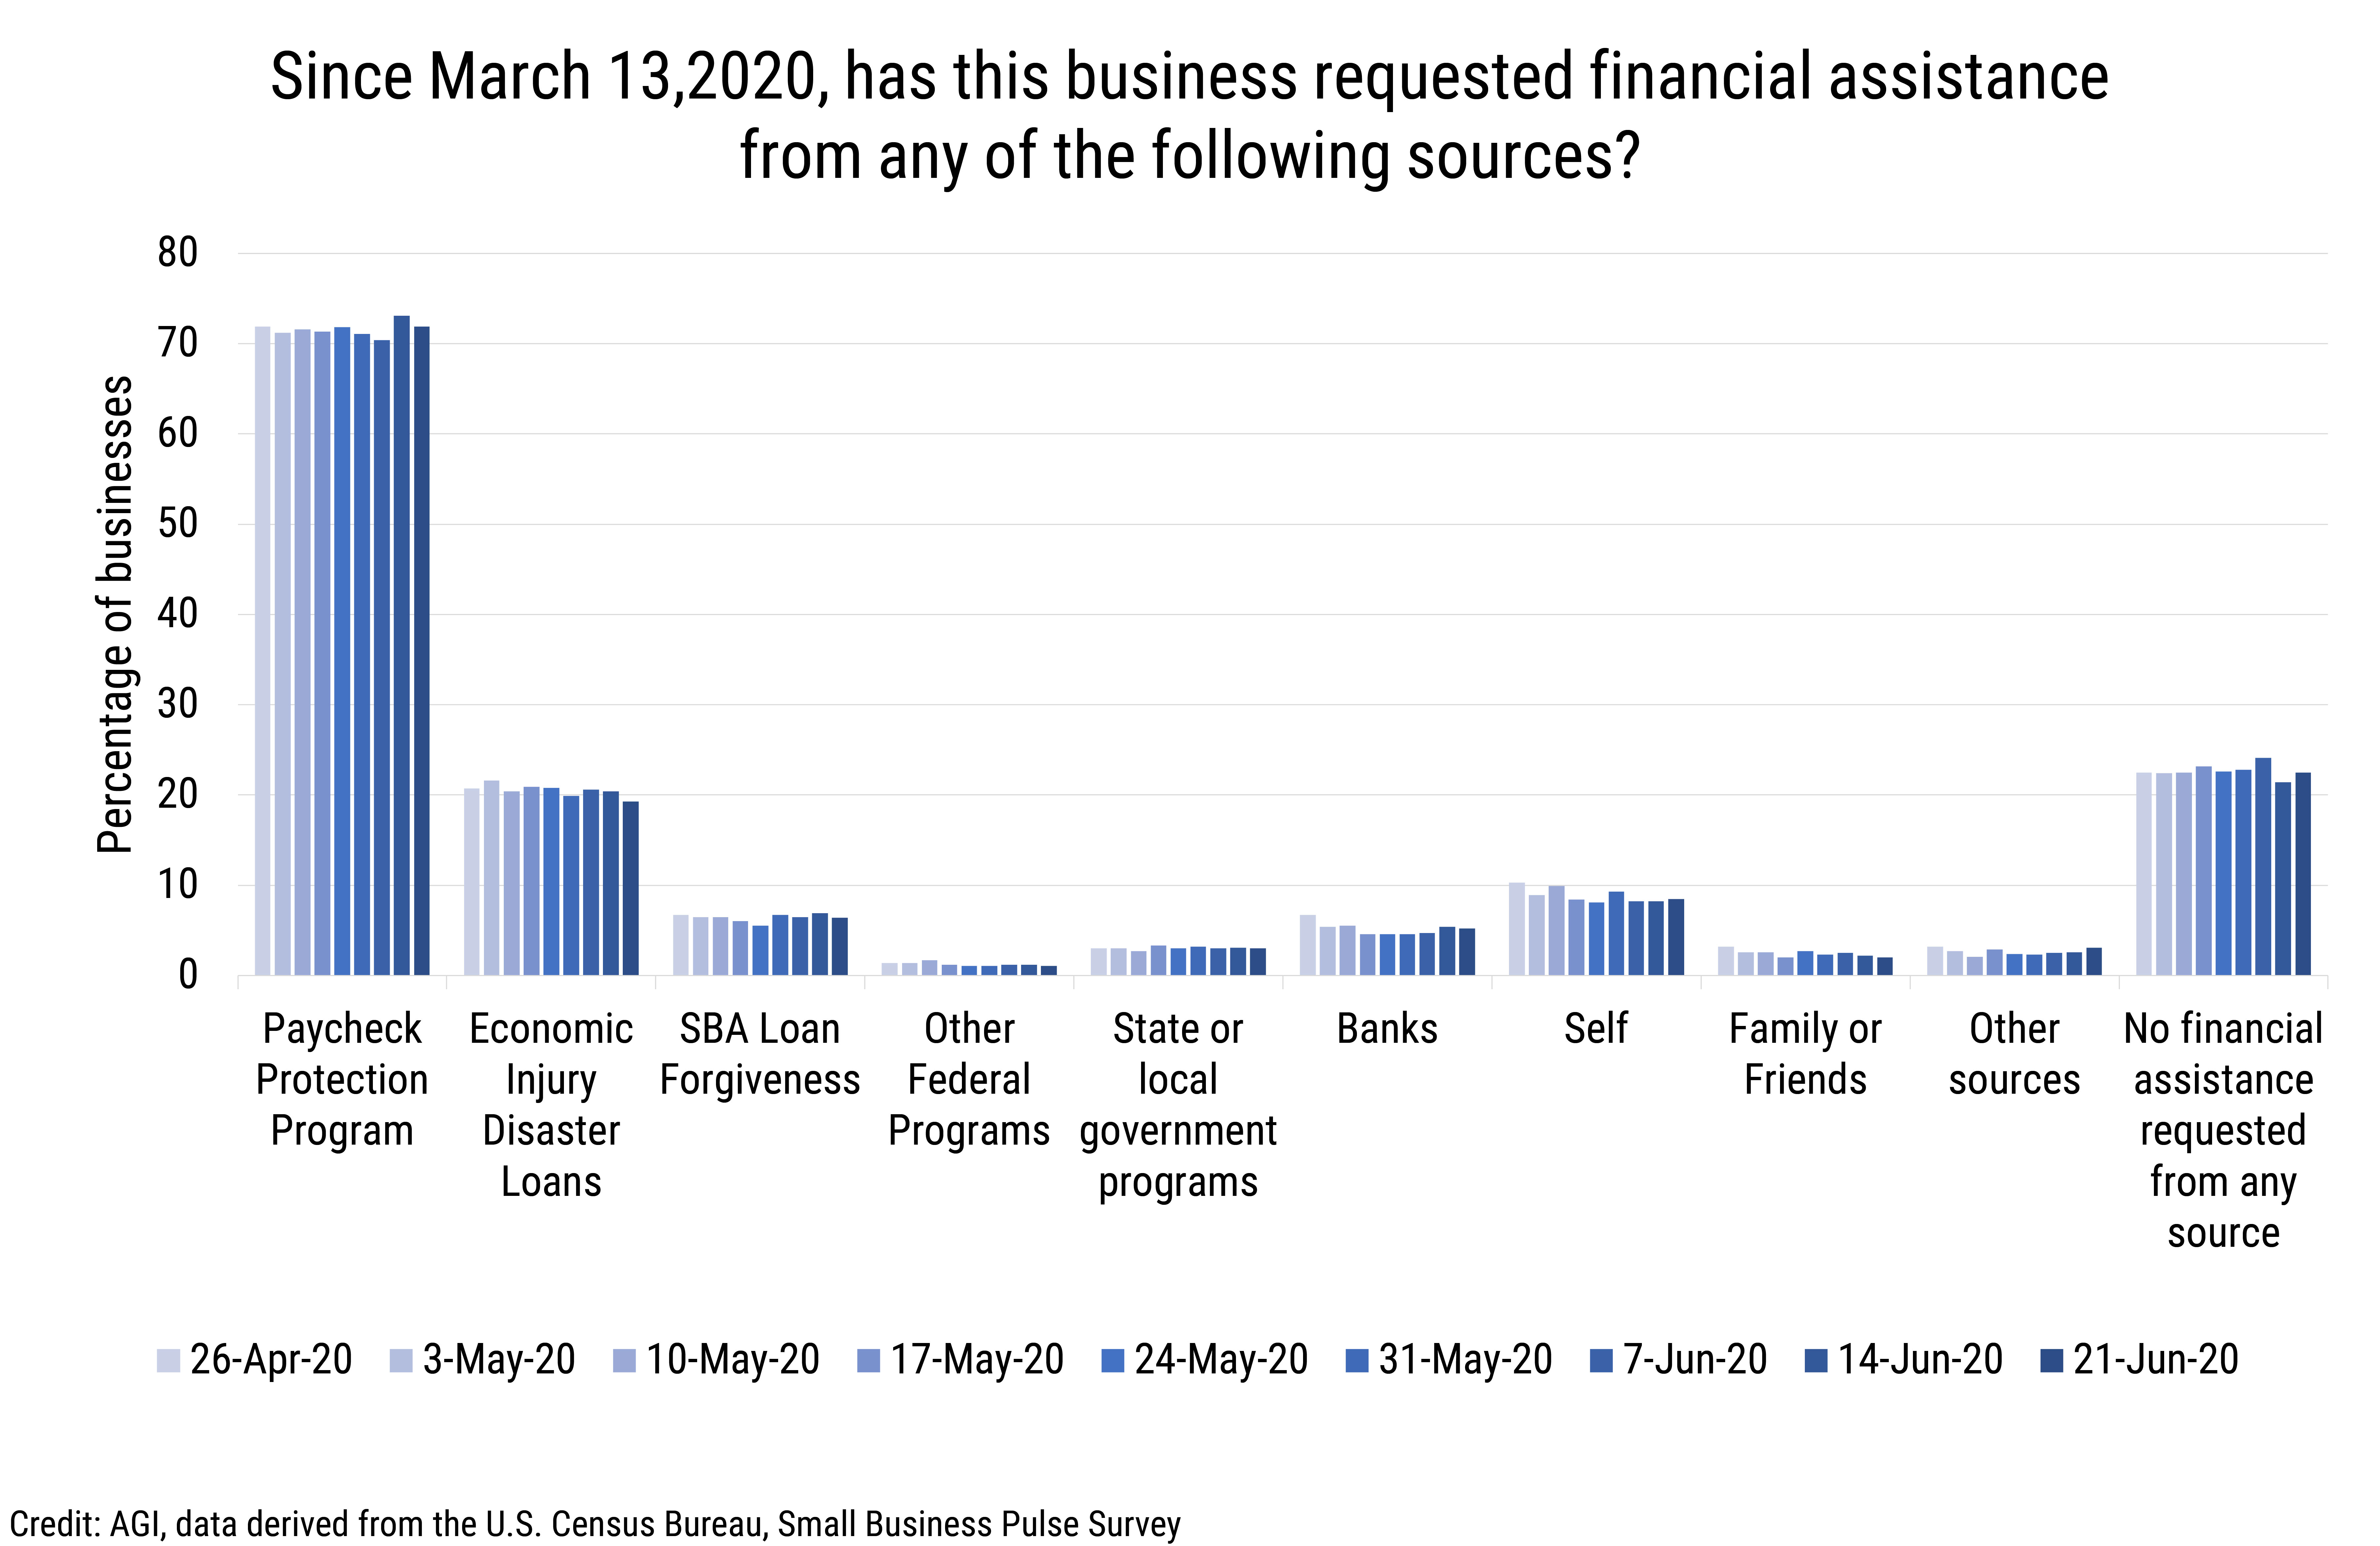 DB_2020-014 chart 02: Sources of Requested Financial Aid (credit: AGI, data derived from the U.S. Census Bureau, Small Business Pulse Survey)